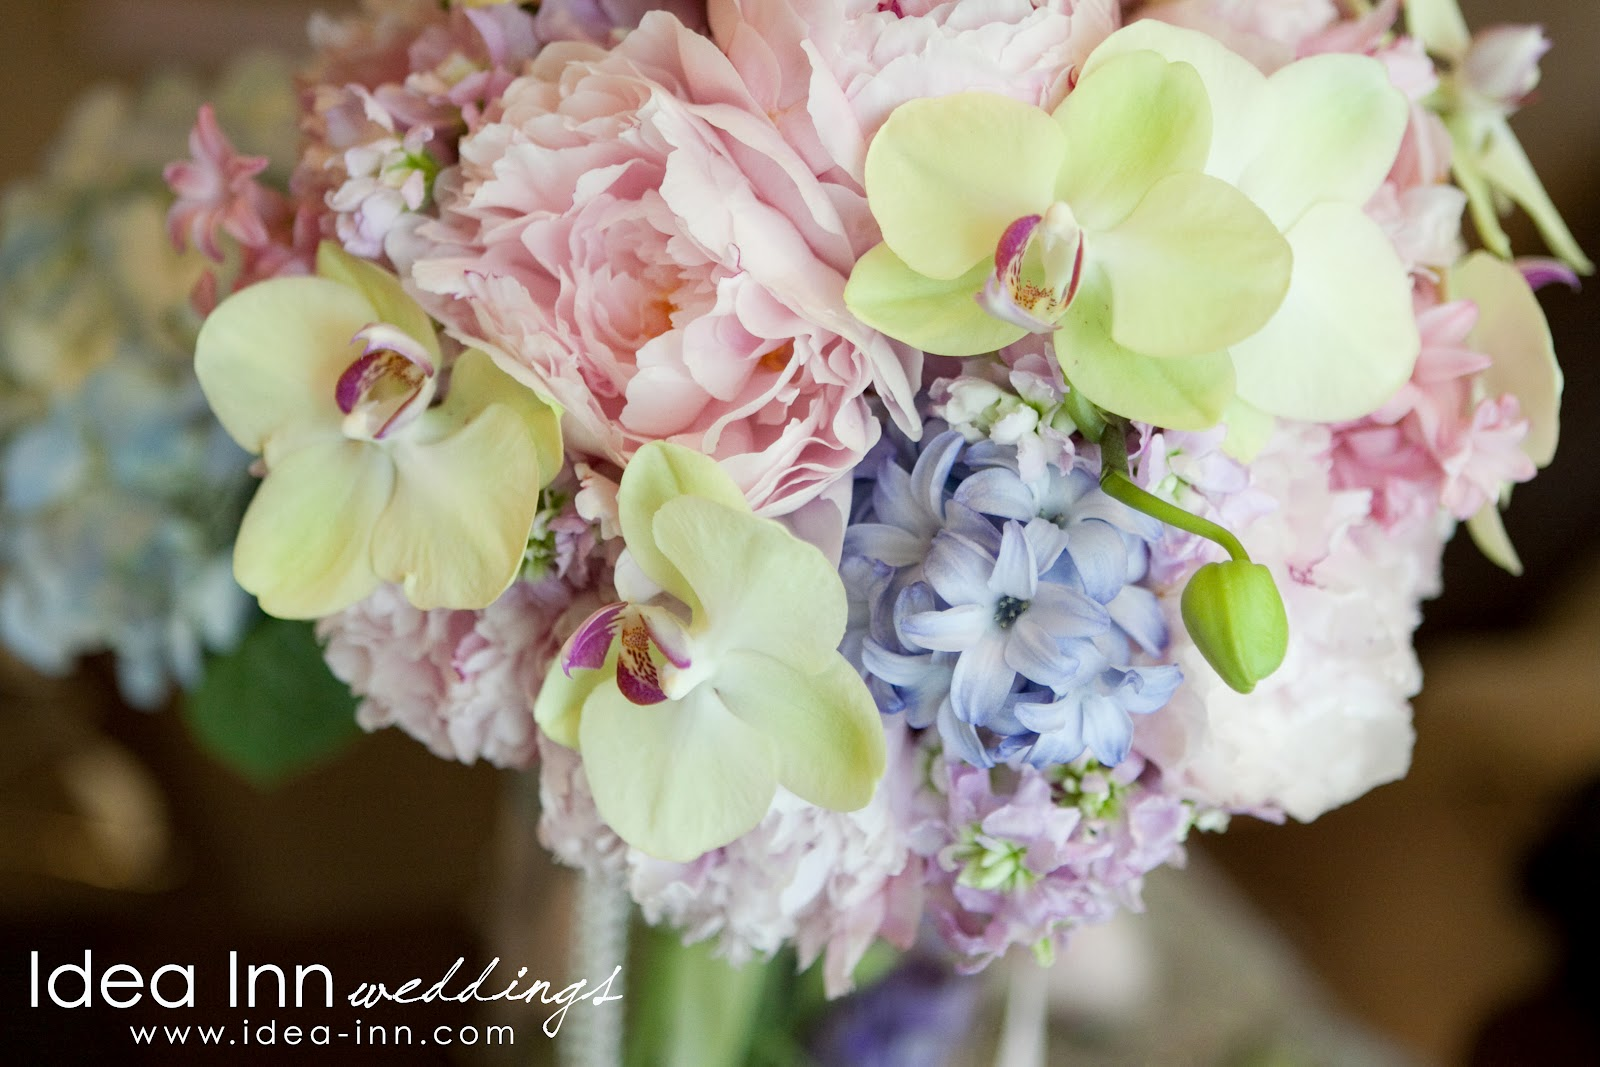 Hitched wedding planners singapore wedding hand bouquets ideas wedding hand bouquet phalaenopsis whimsical izmirmasajfo Gallery